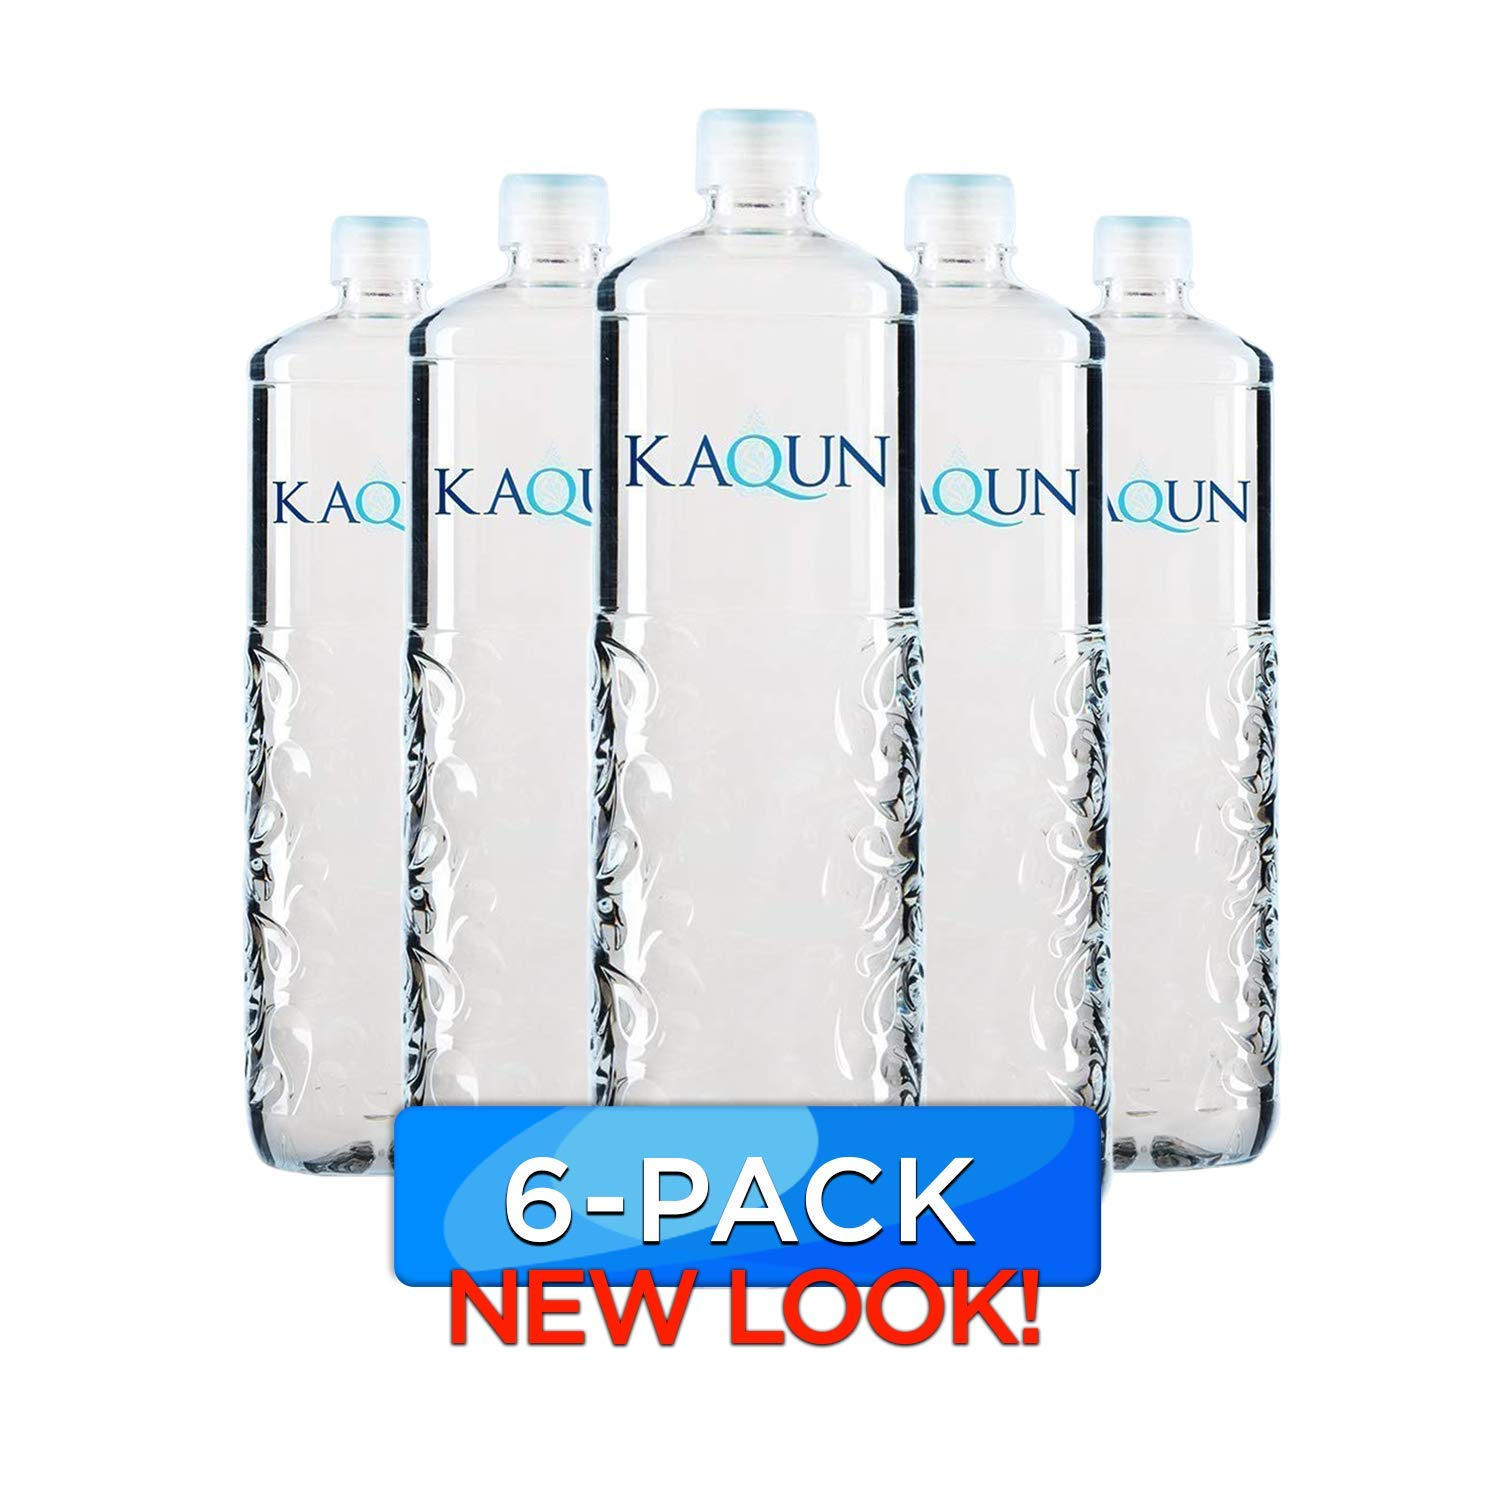 KAQUN Water 6-Pack, Oxygenated & Refreshing, Oxygen Infused Bottled Drinking Water, Chemical Free, Detox, for Kaqun Therapy, Authorized Retailer by BodyHealth